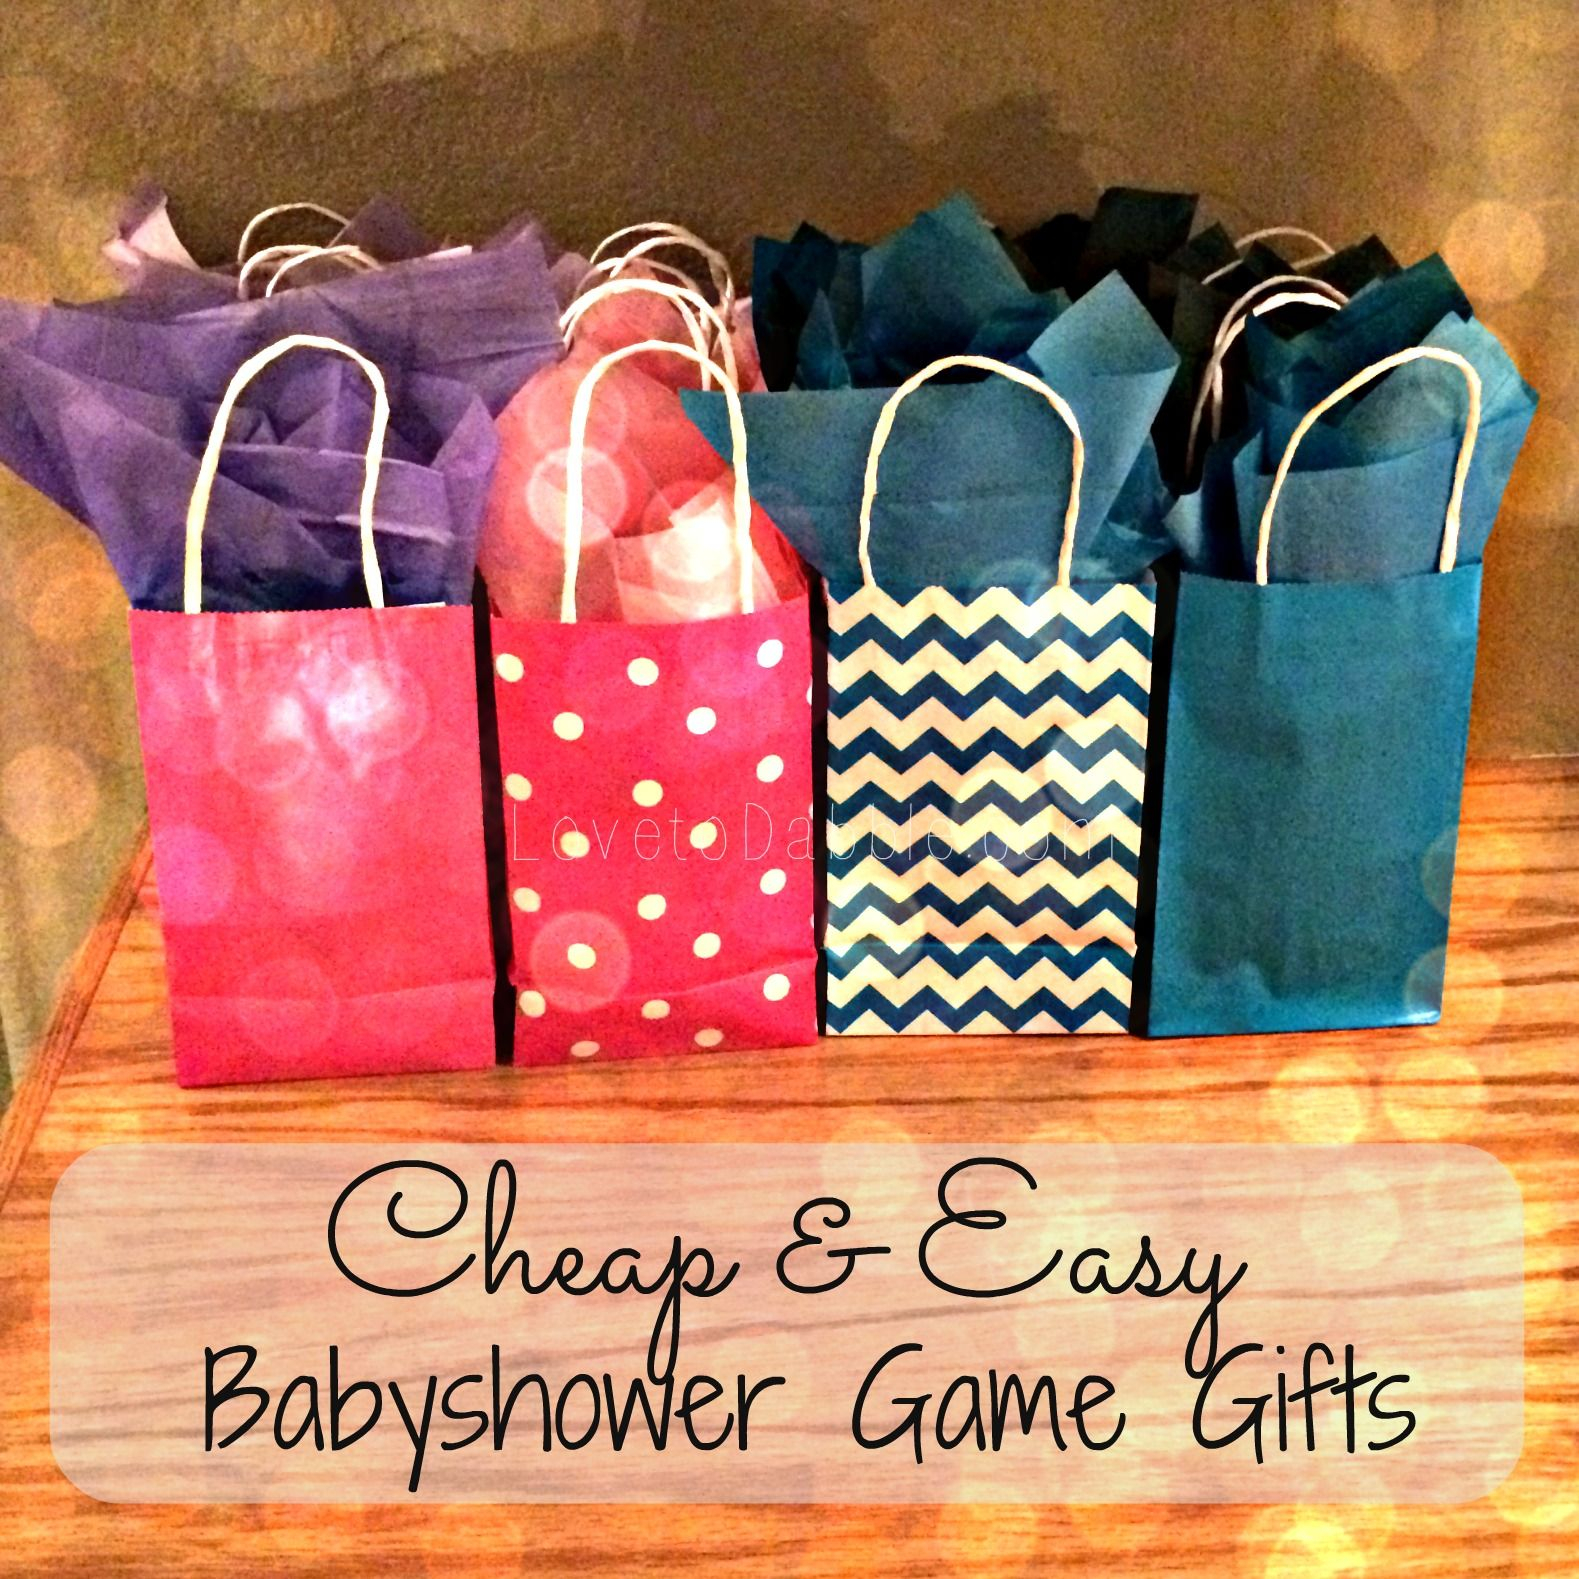 Glamorous Hot Baby Shower Game Prizes For Guys And Baby Shower Game Prizes For regarding Lovely Baby Shower Game Prizes